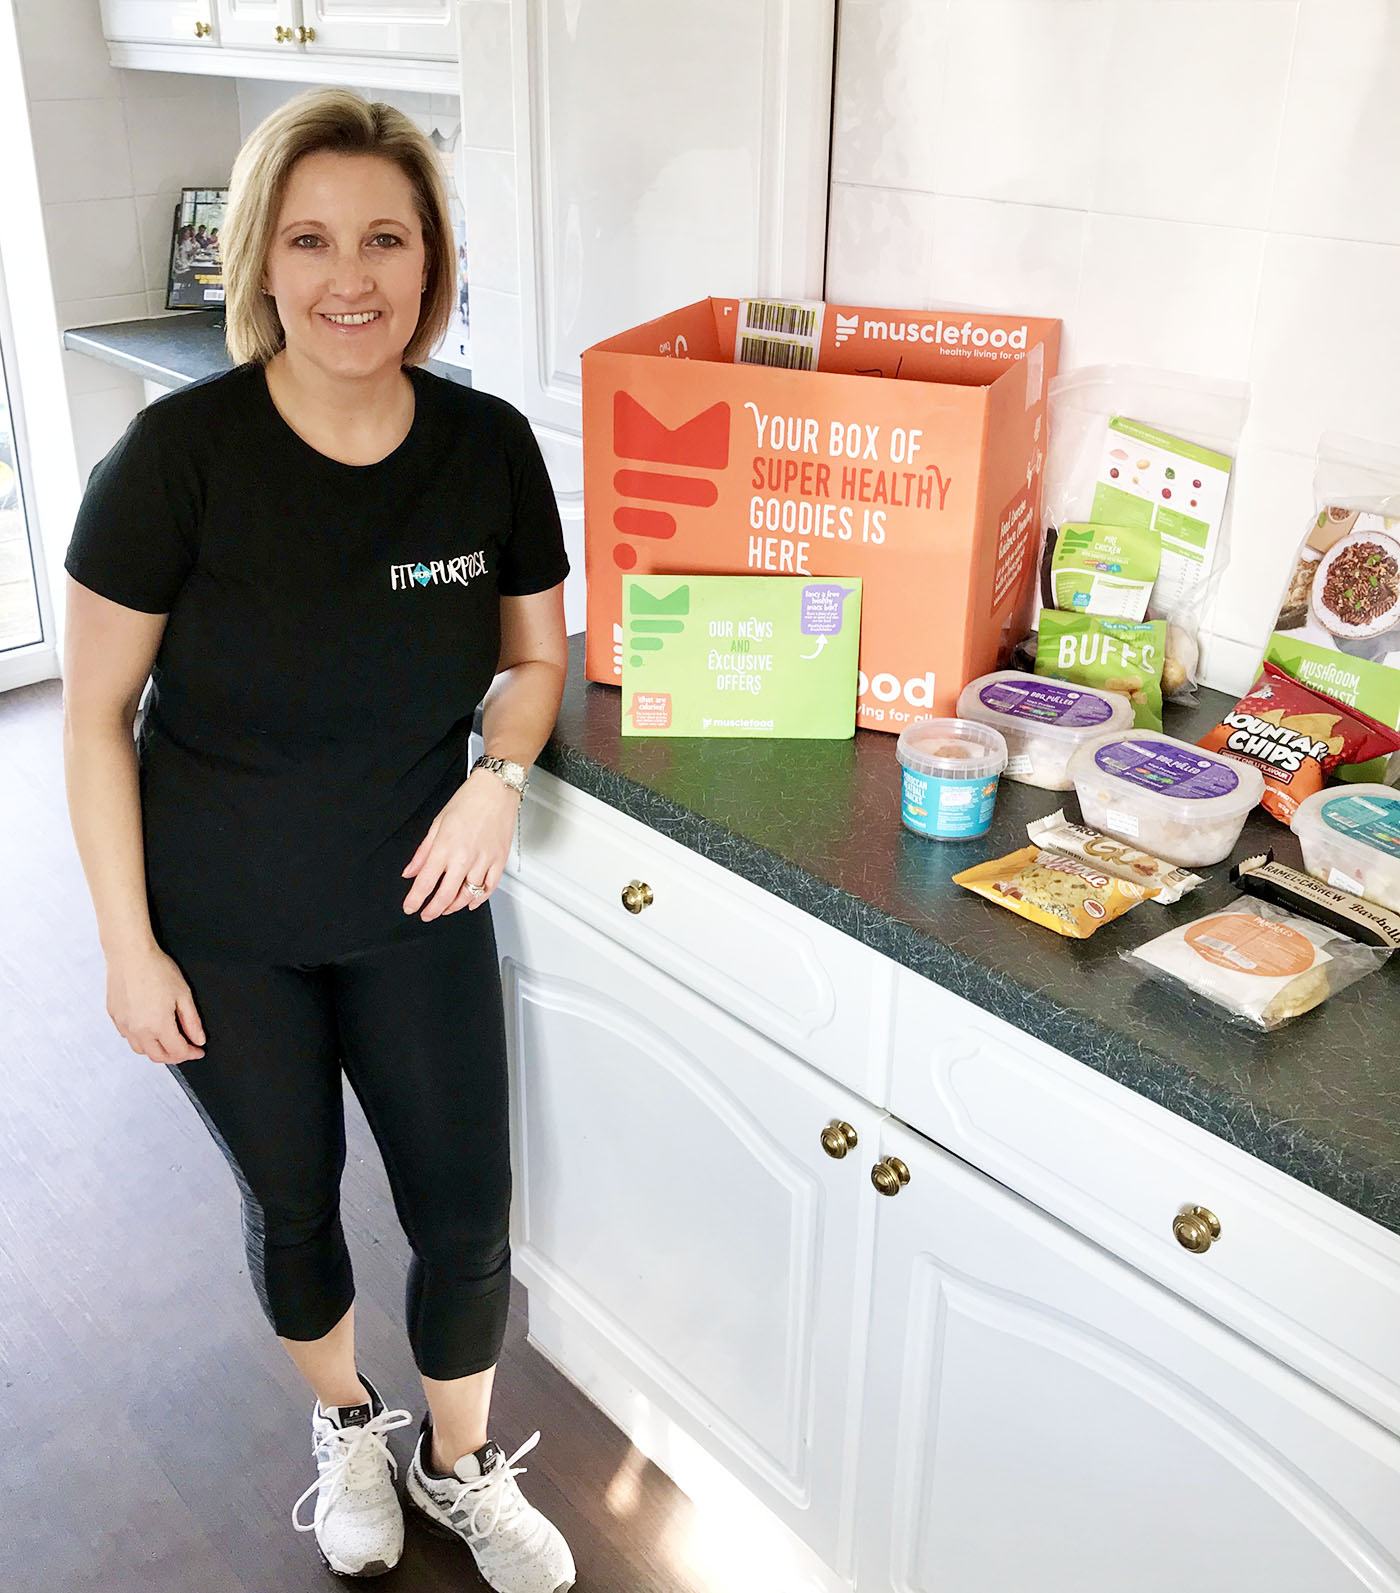 My Partnership with Muscle Food